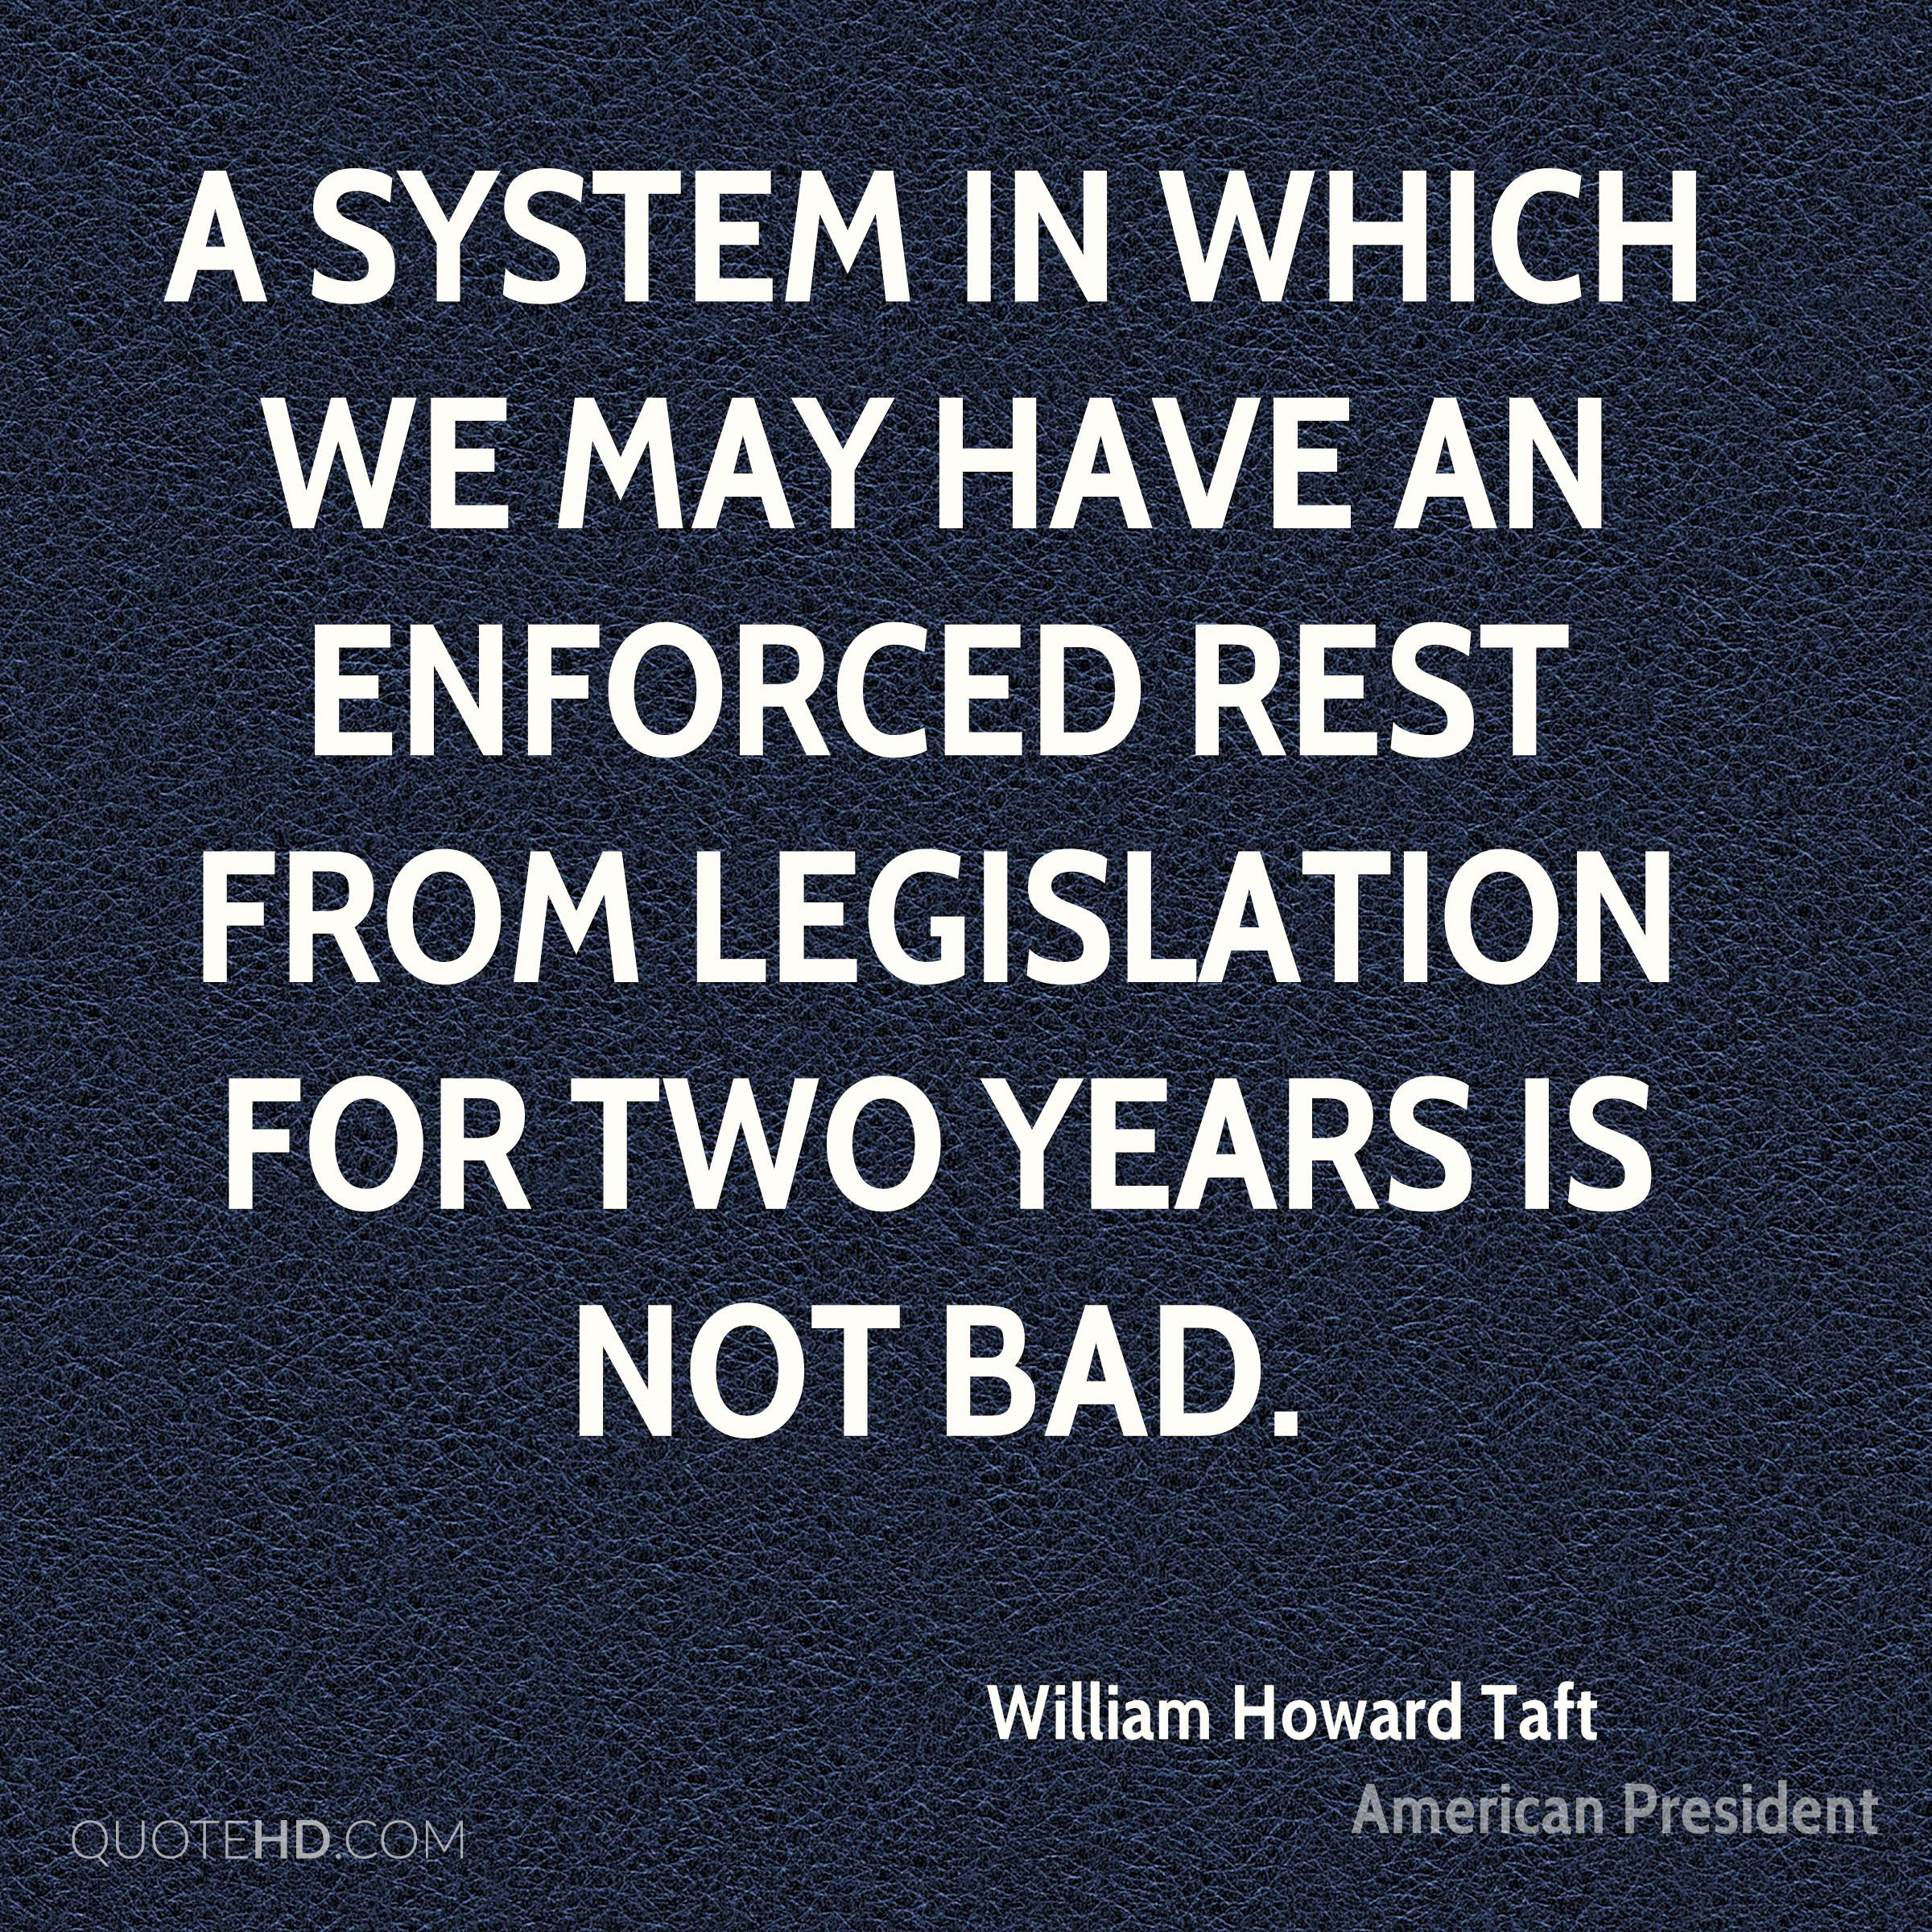 A system in which we may have an enforced rest from legislation for two years is not bad.